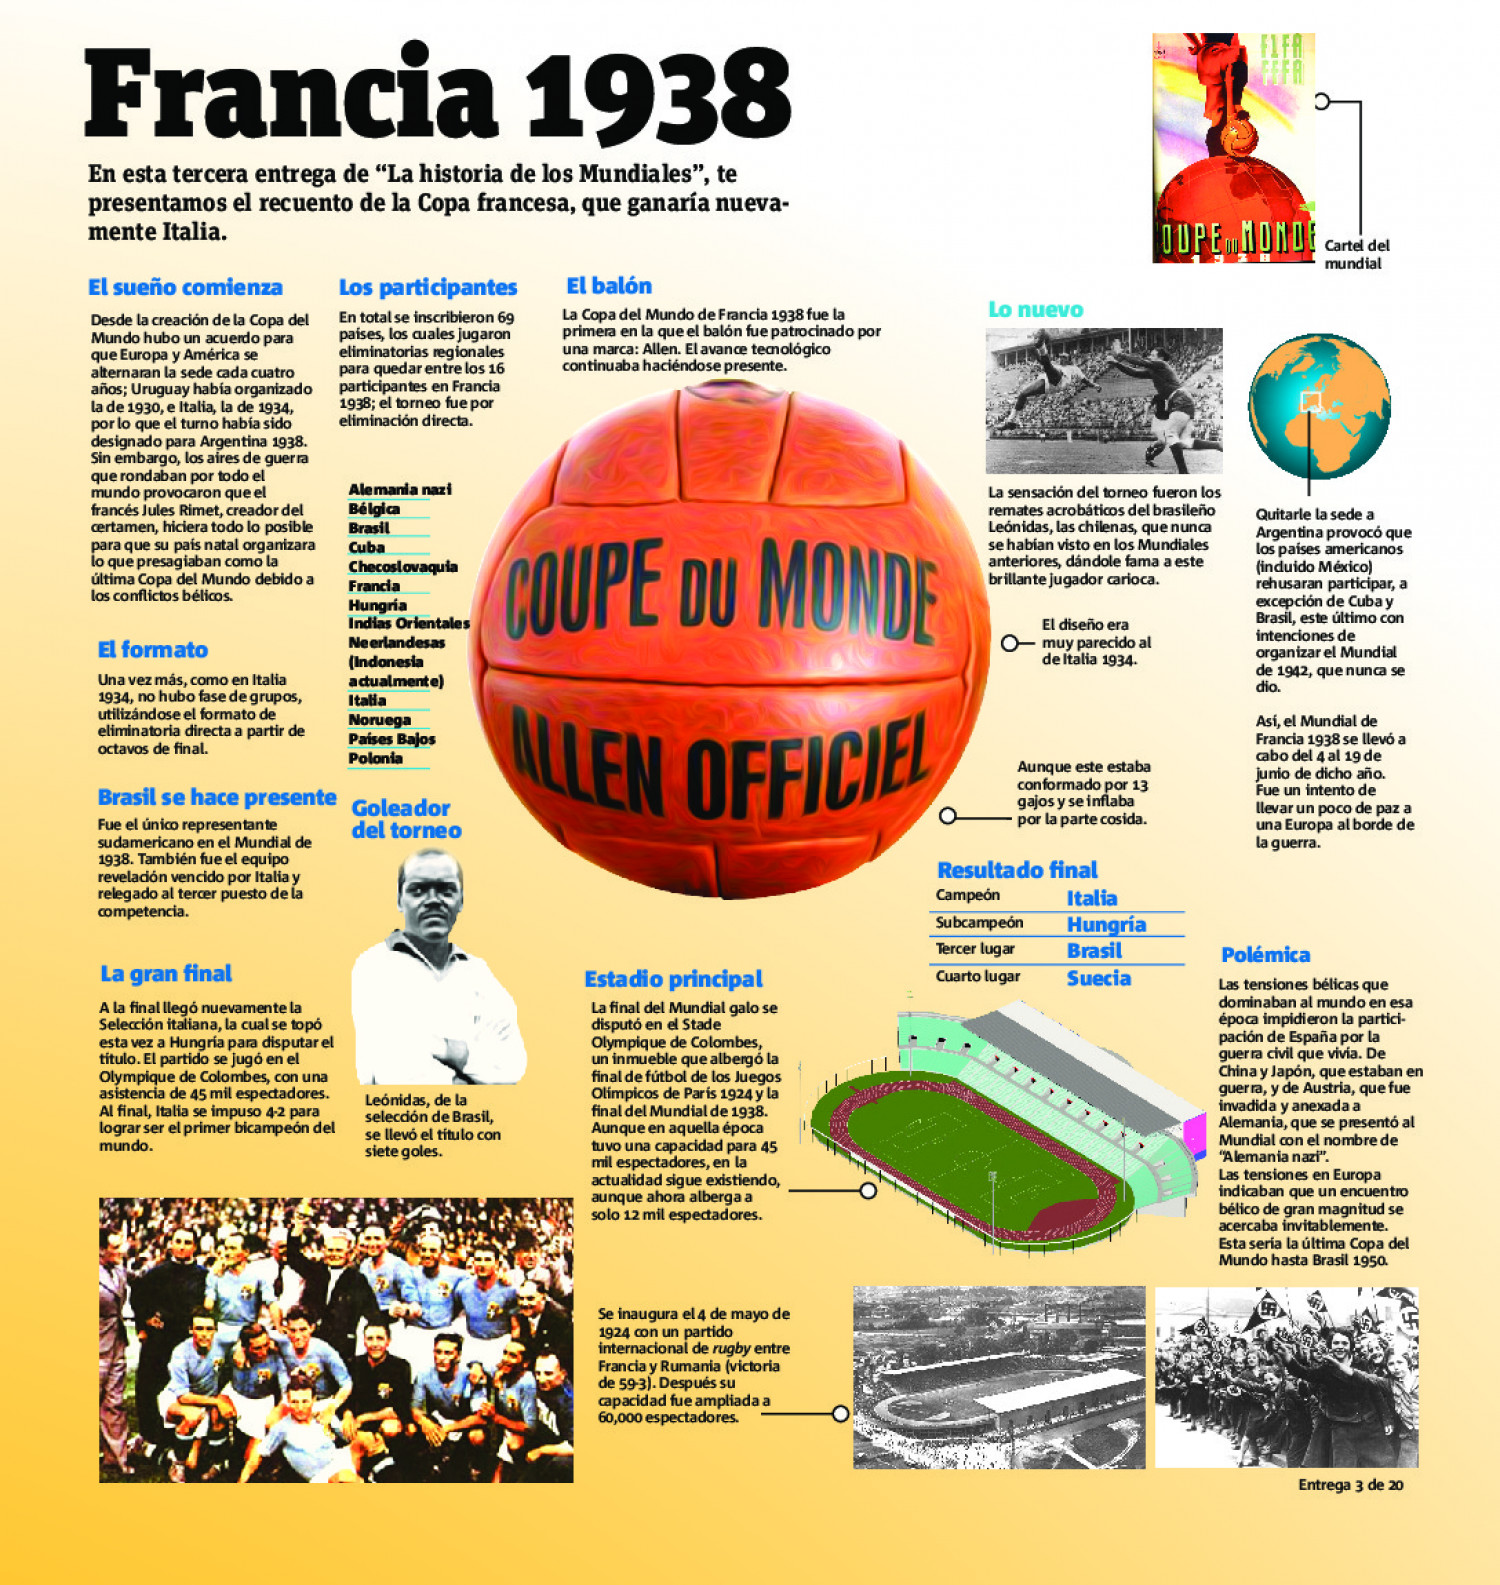 Francia 1938 Infographic